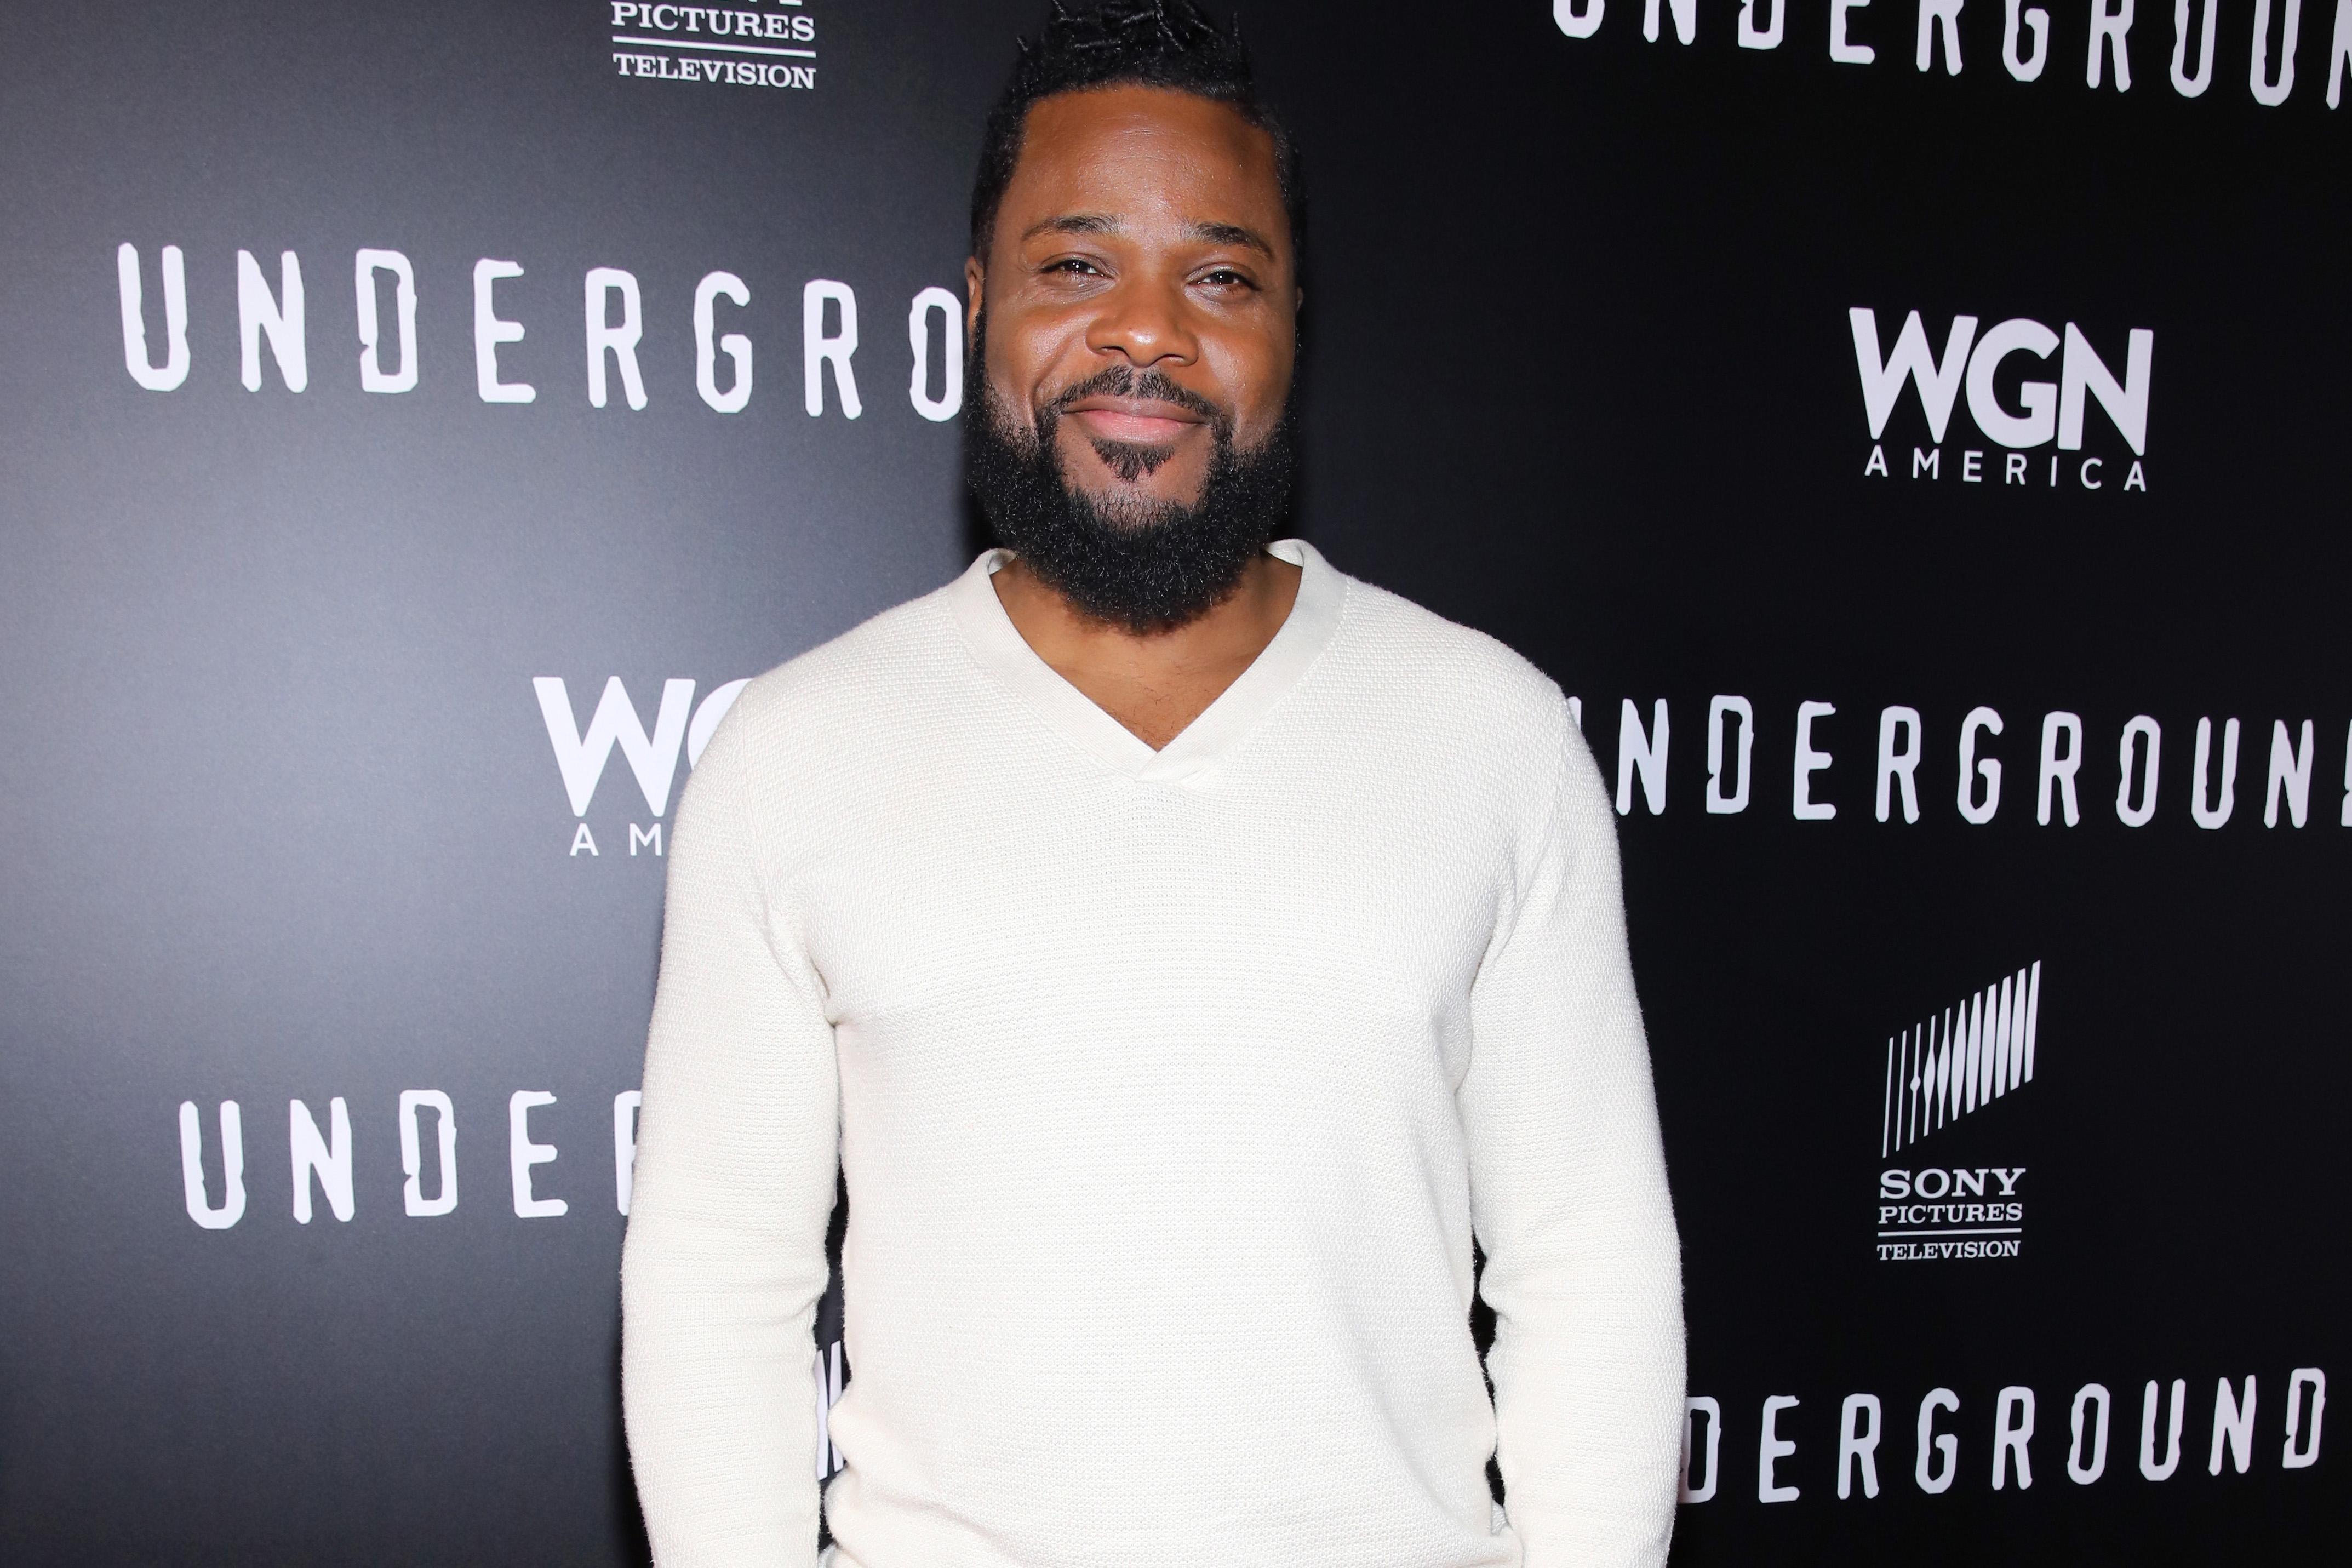 New Dad Alert: Malcolm Jamal Warner is Reportedly A Dad!